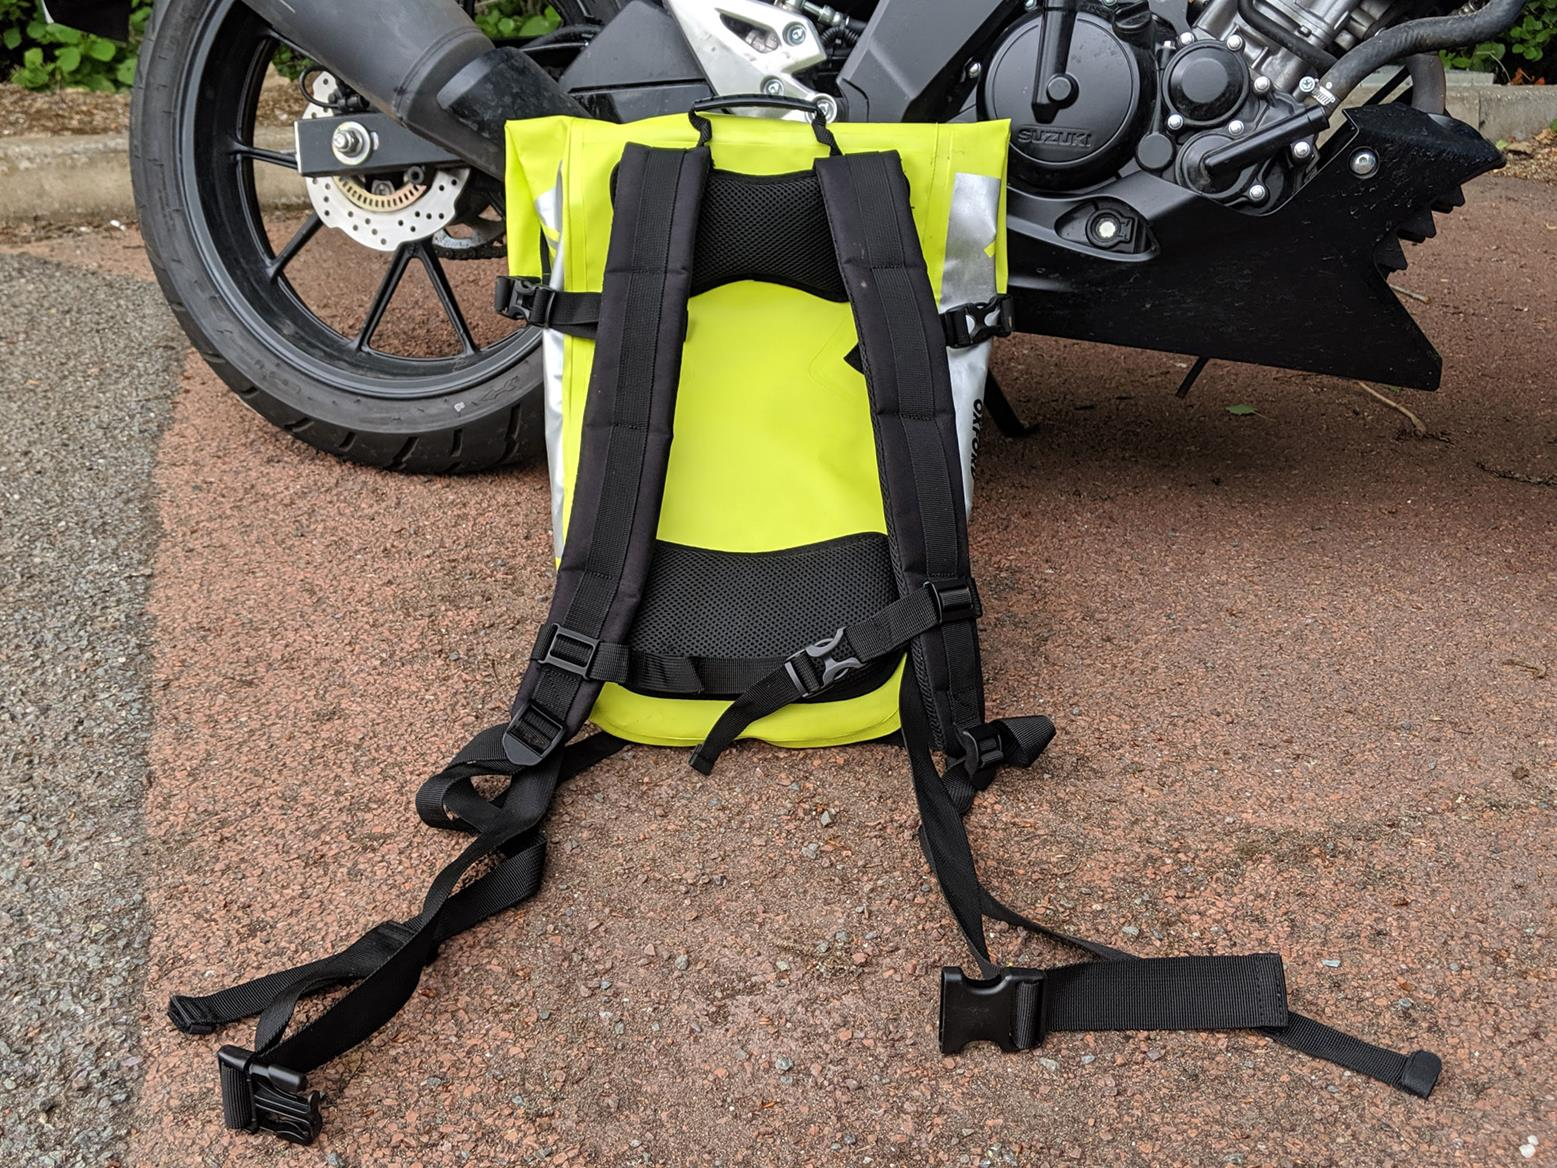 The shoulder, waist and chest straps help keep the £49.99 AquaV20 rolltop bag secure while riding